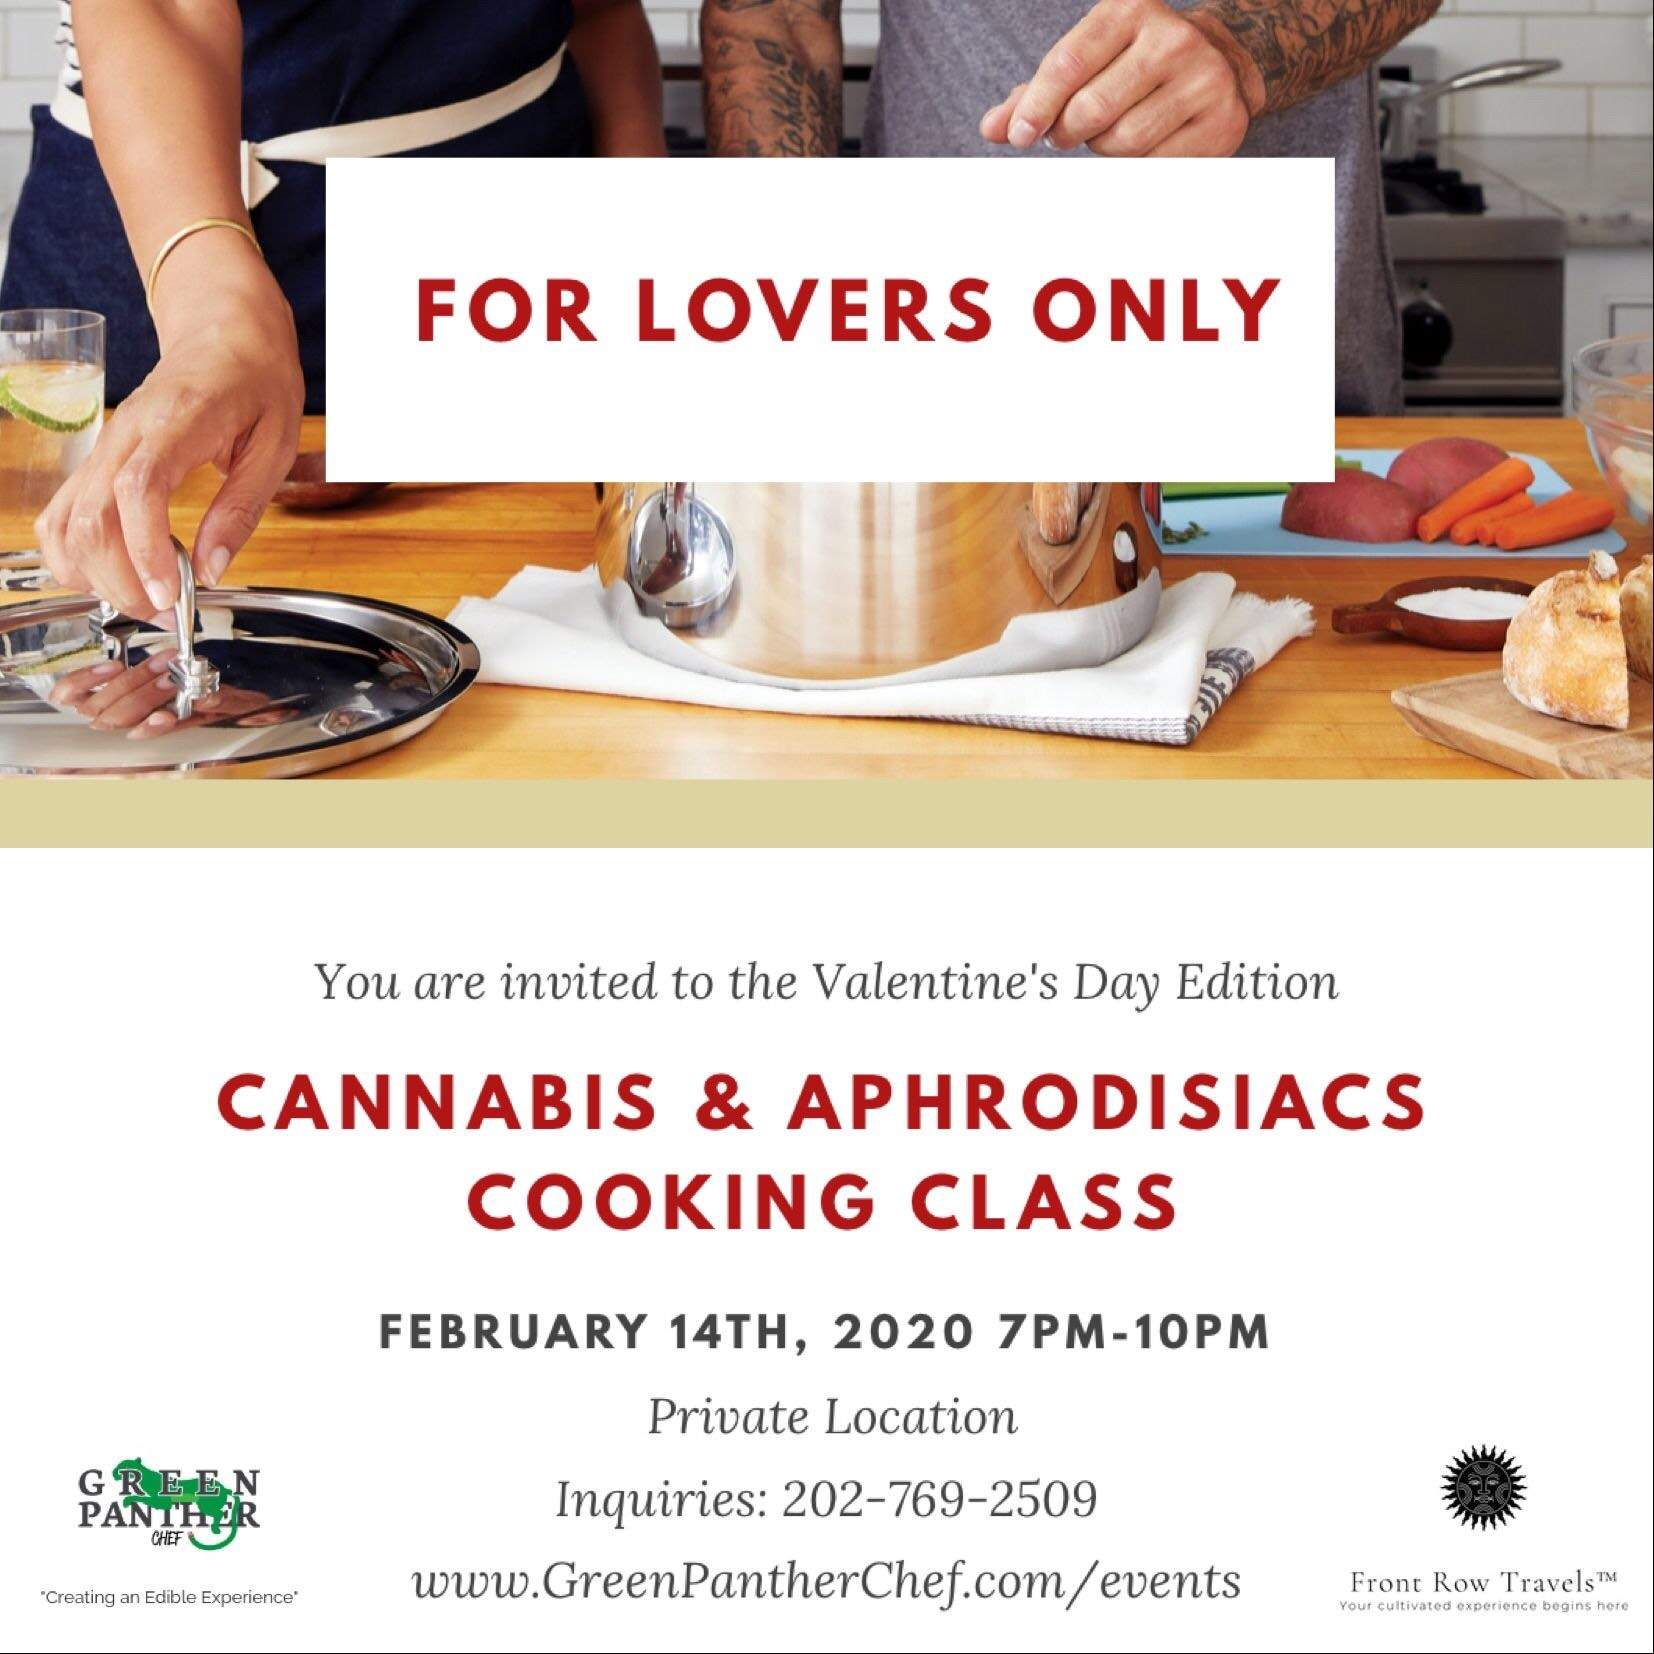 Canna Couples Cooking Class